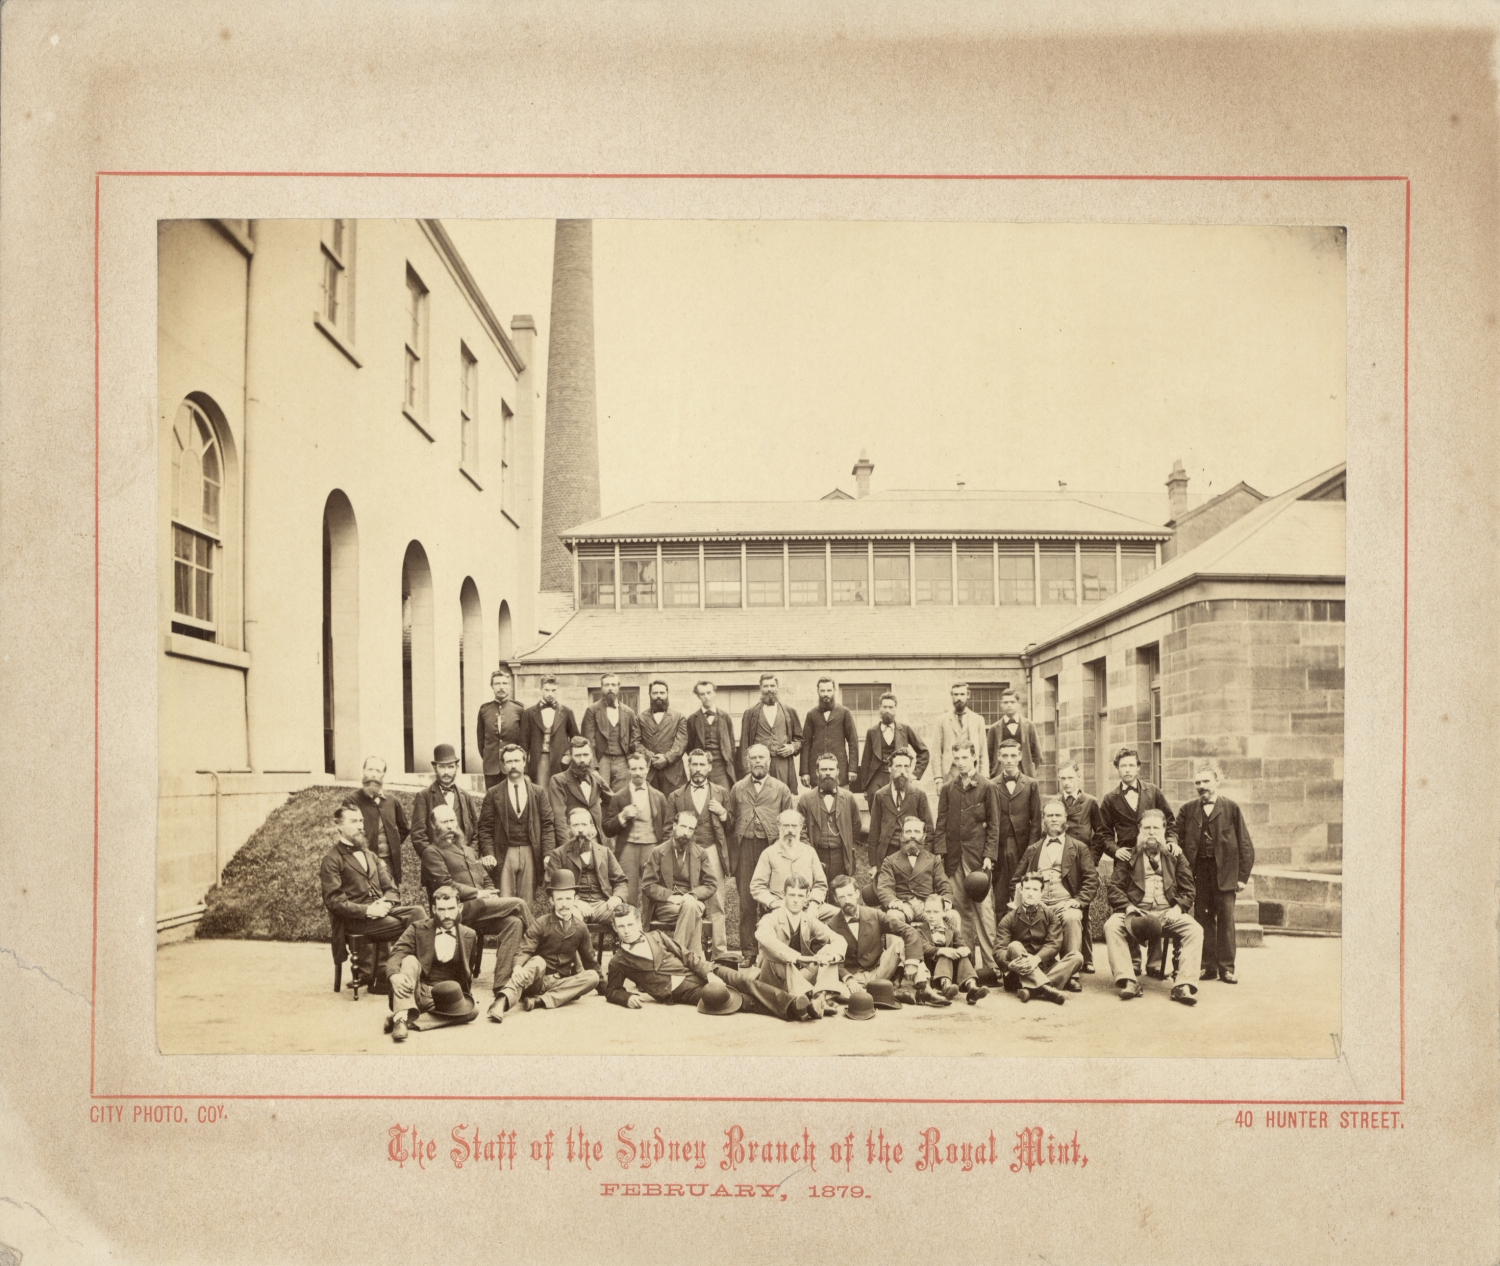 One of a collection of 7 loose photographs relating to the Sydney Mint.